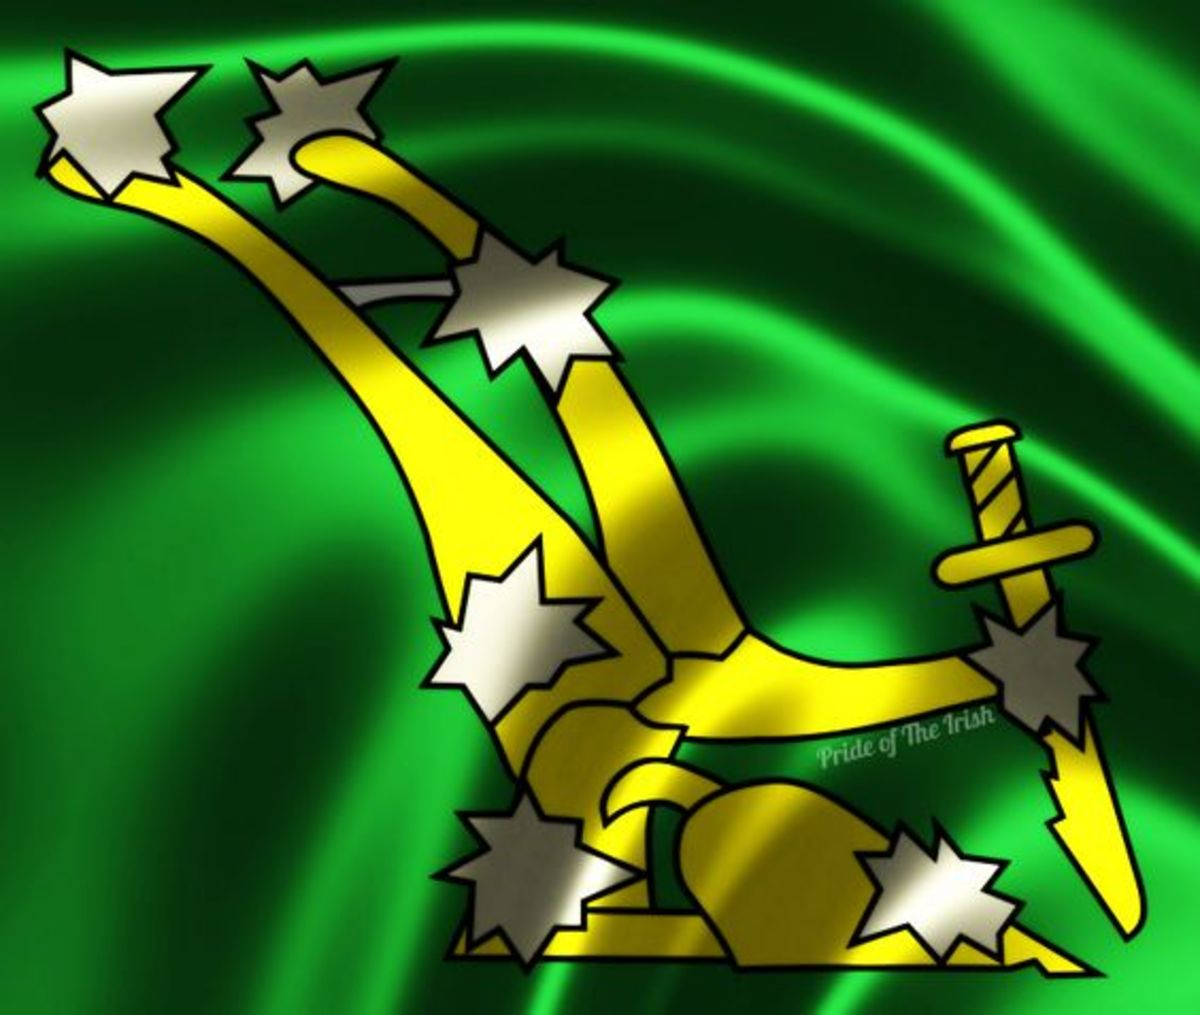 James Connolly's ICA's original 'Plough and Stars', a military standard of the workers militia